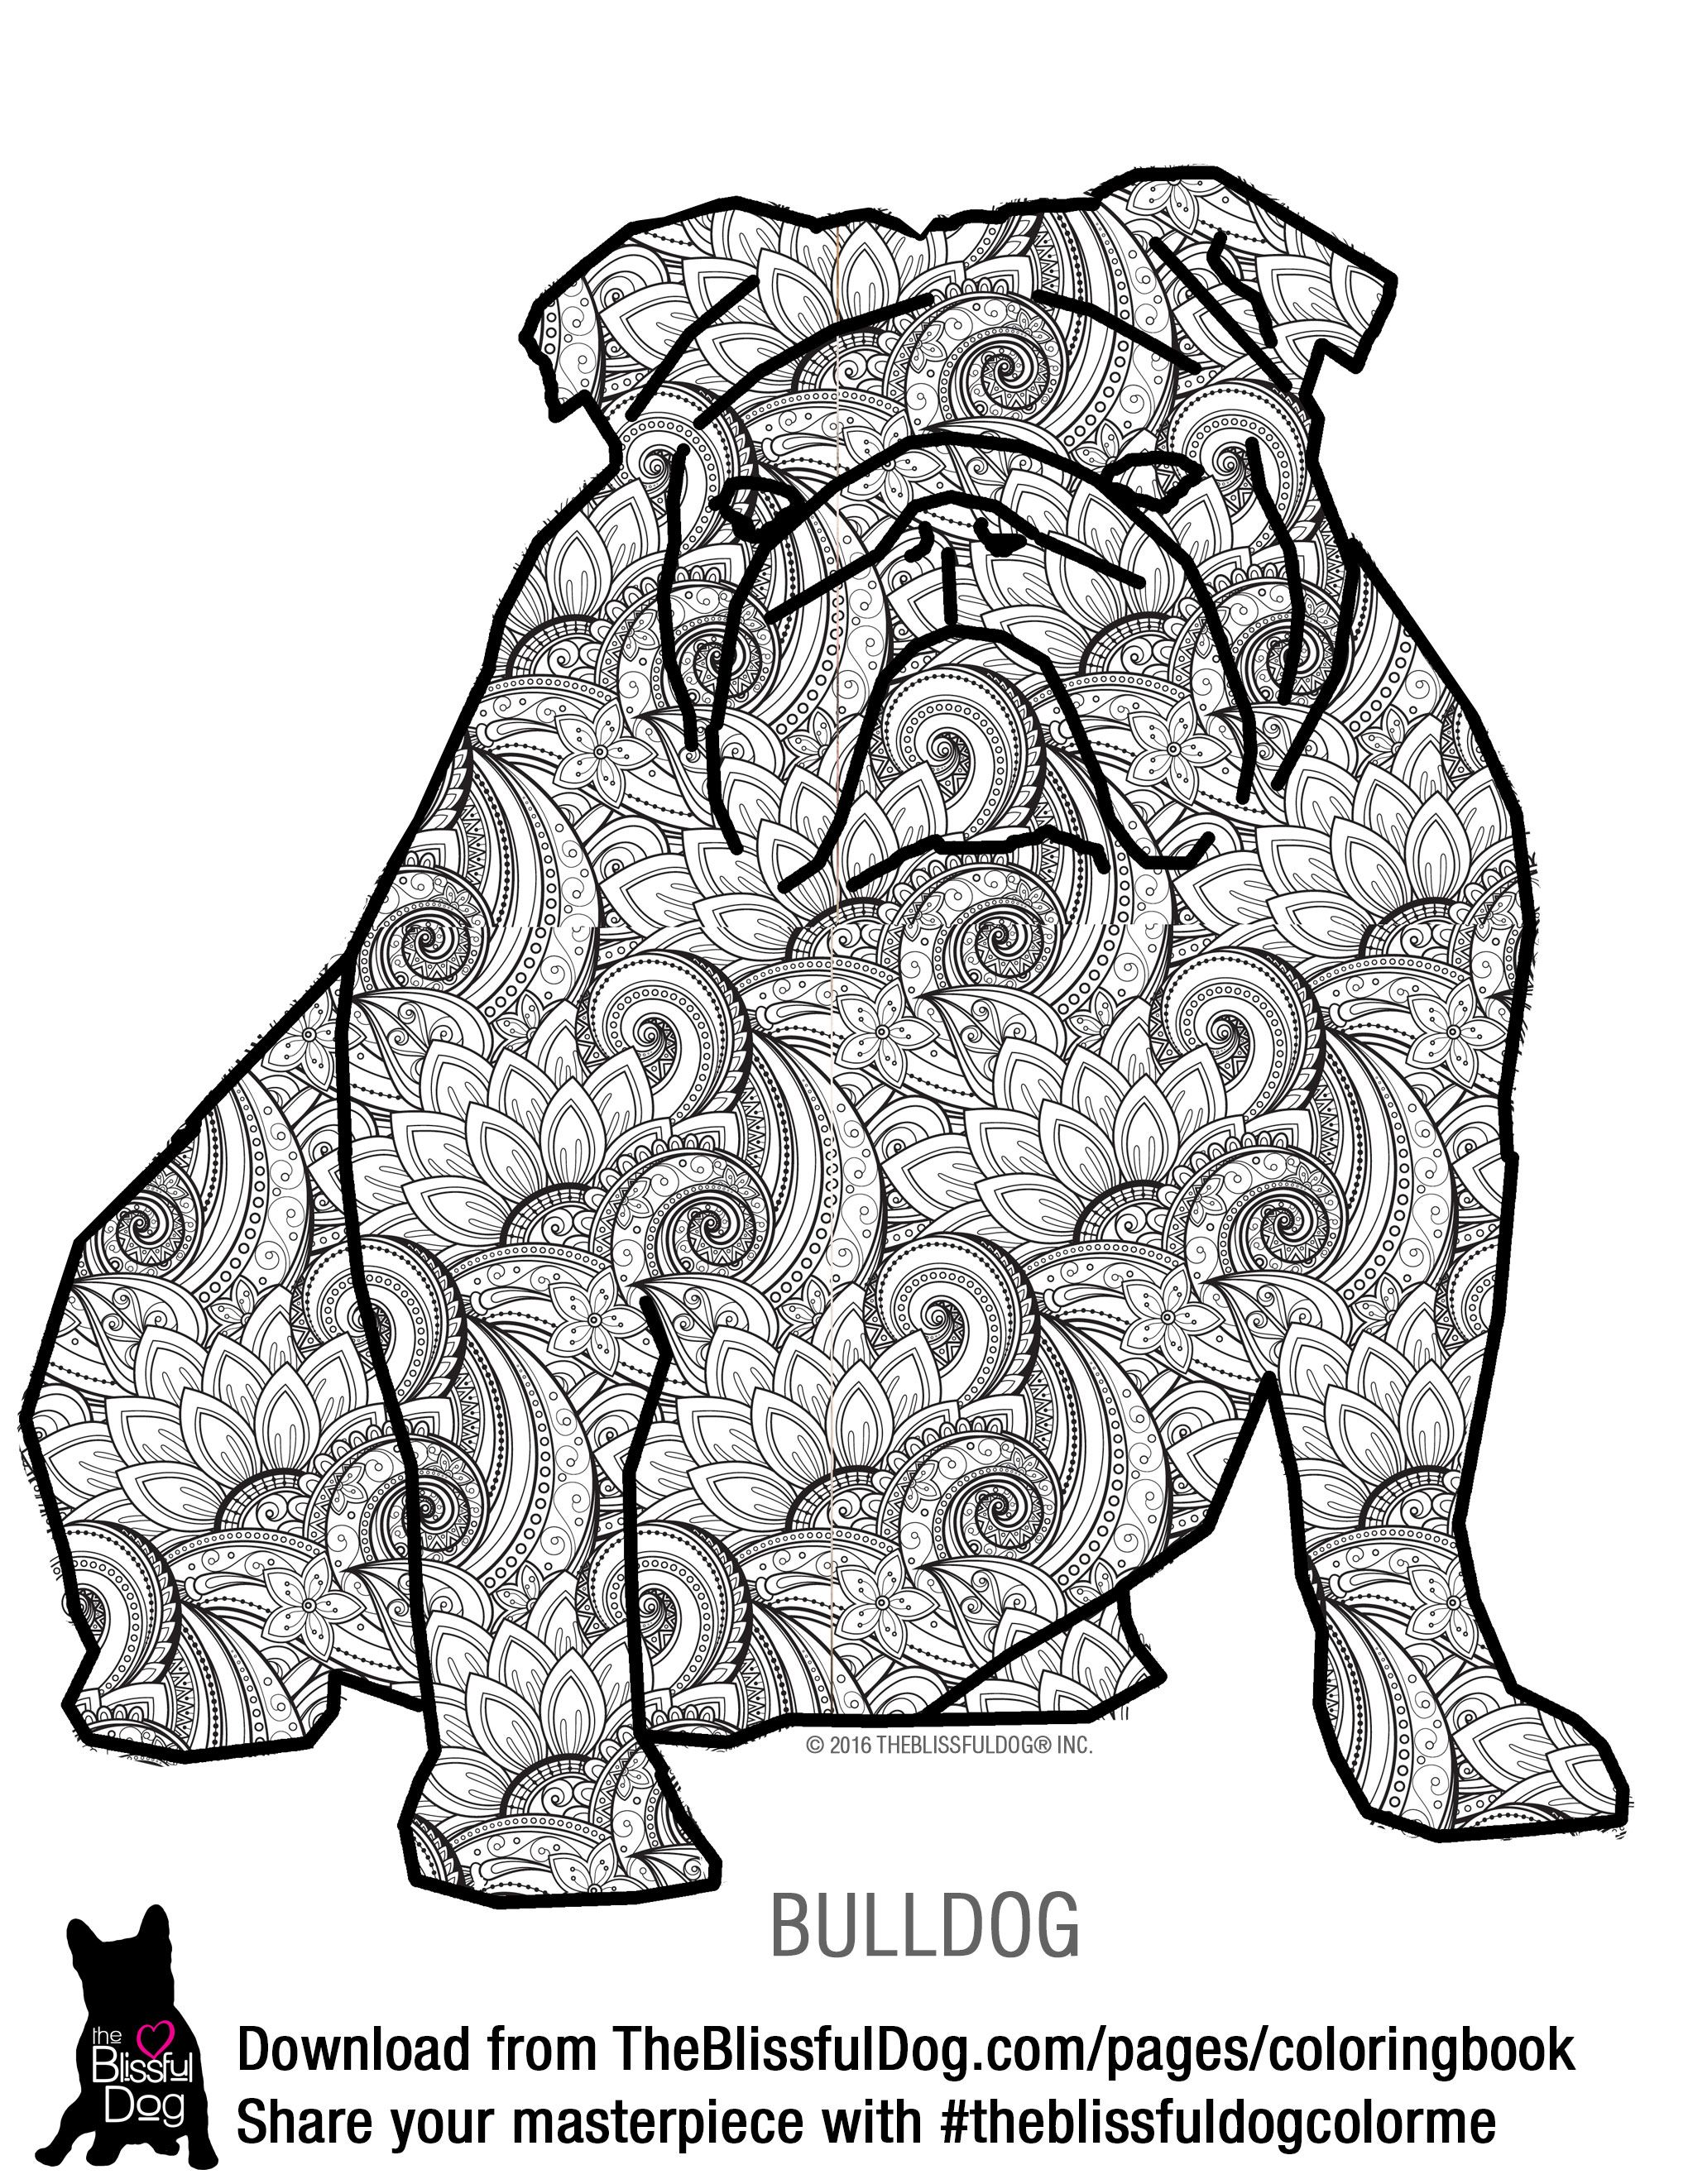 Here Is The Bulldog Coloring Book Page Big File For High Rez Coloring Pleasure Dog Coloring Page Dog Coloring Book Animal Coloring Books